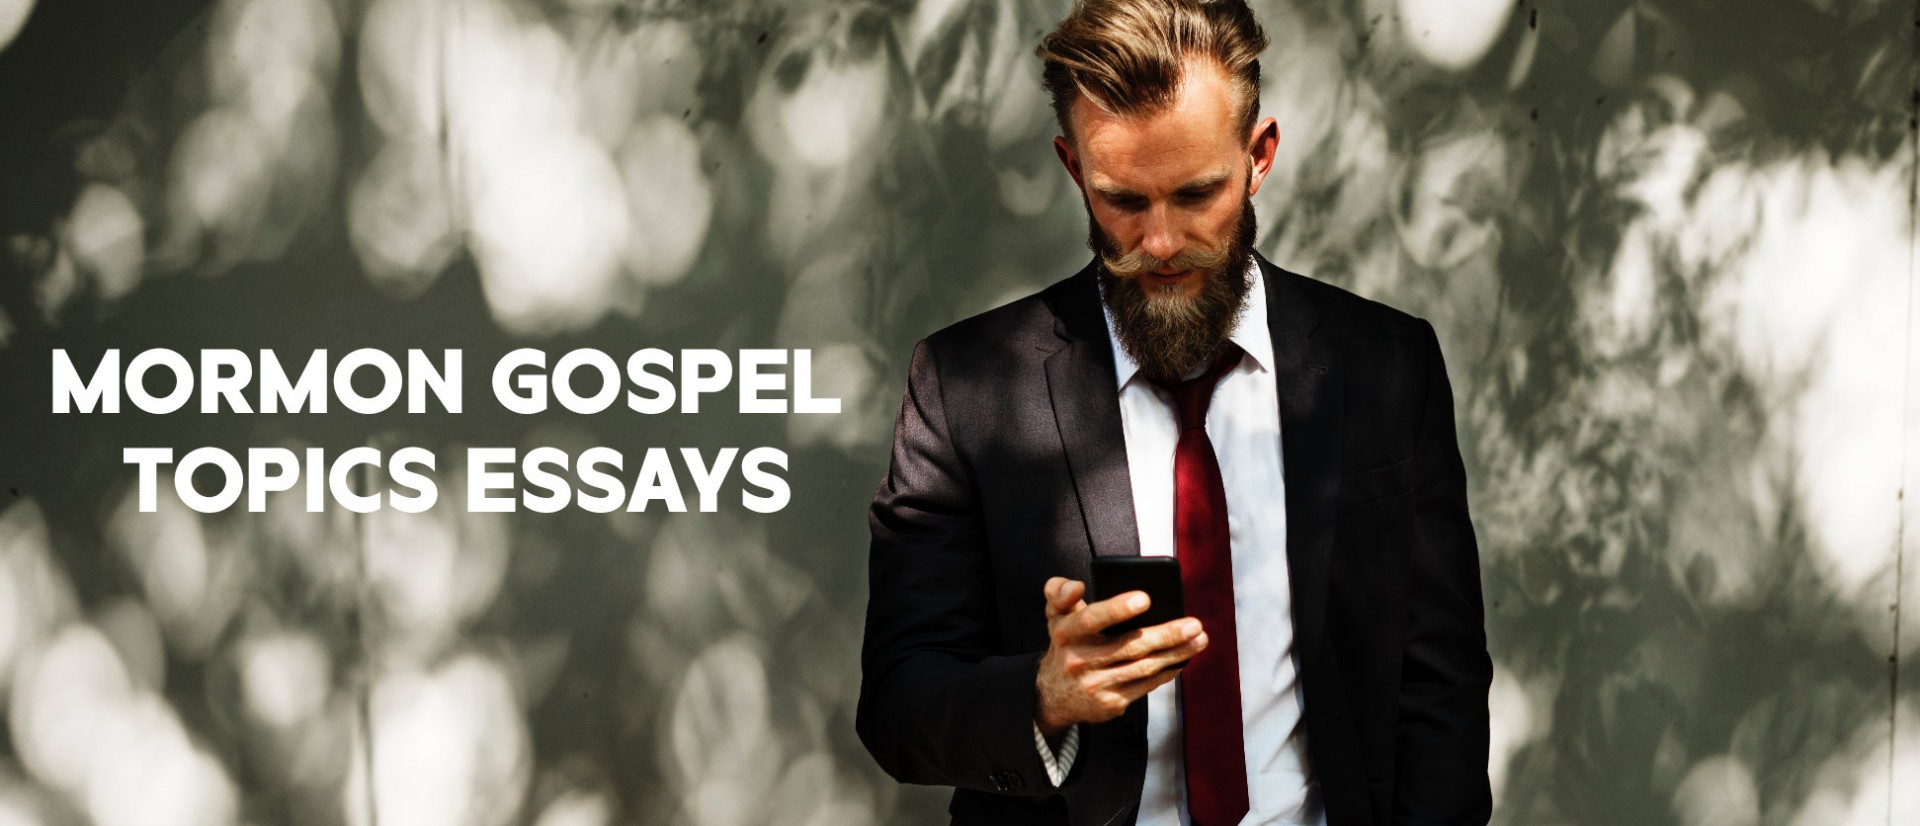 002 Essay Example Gospel Topics Essays Outstanding Pdf Plural Marriage Becoming Like God 1920